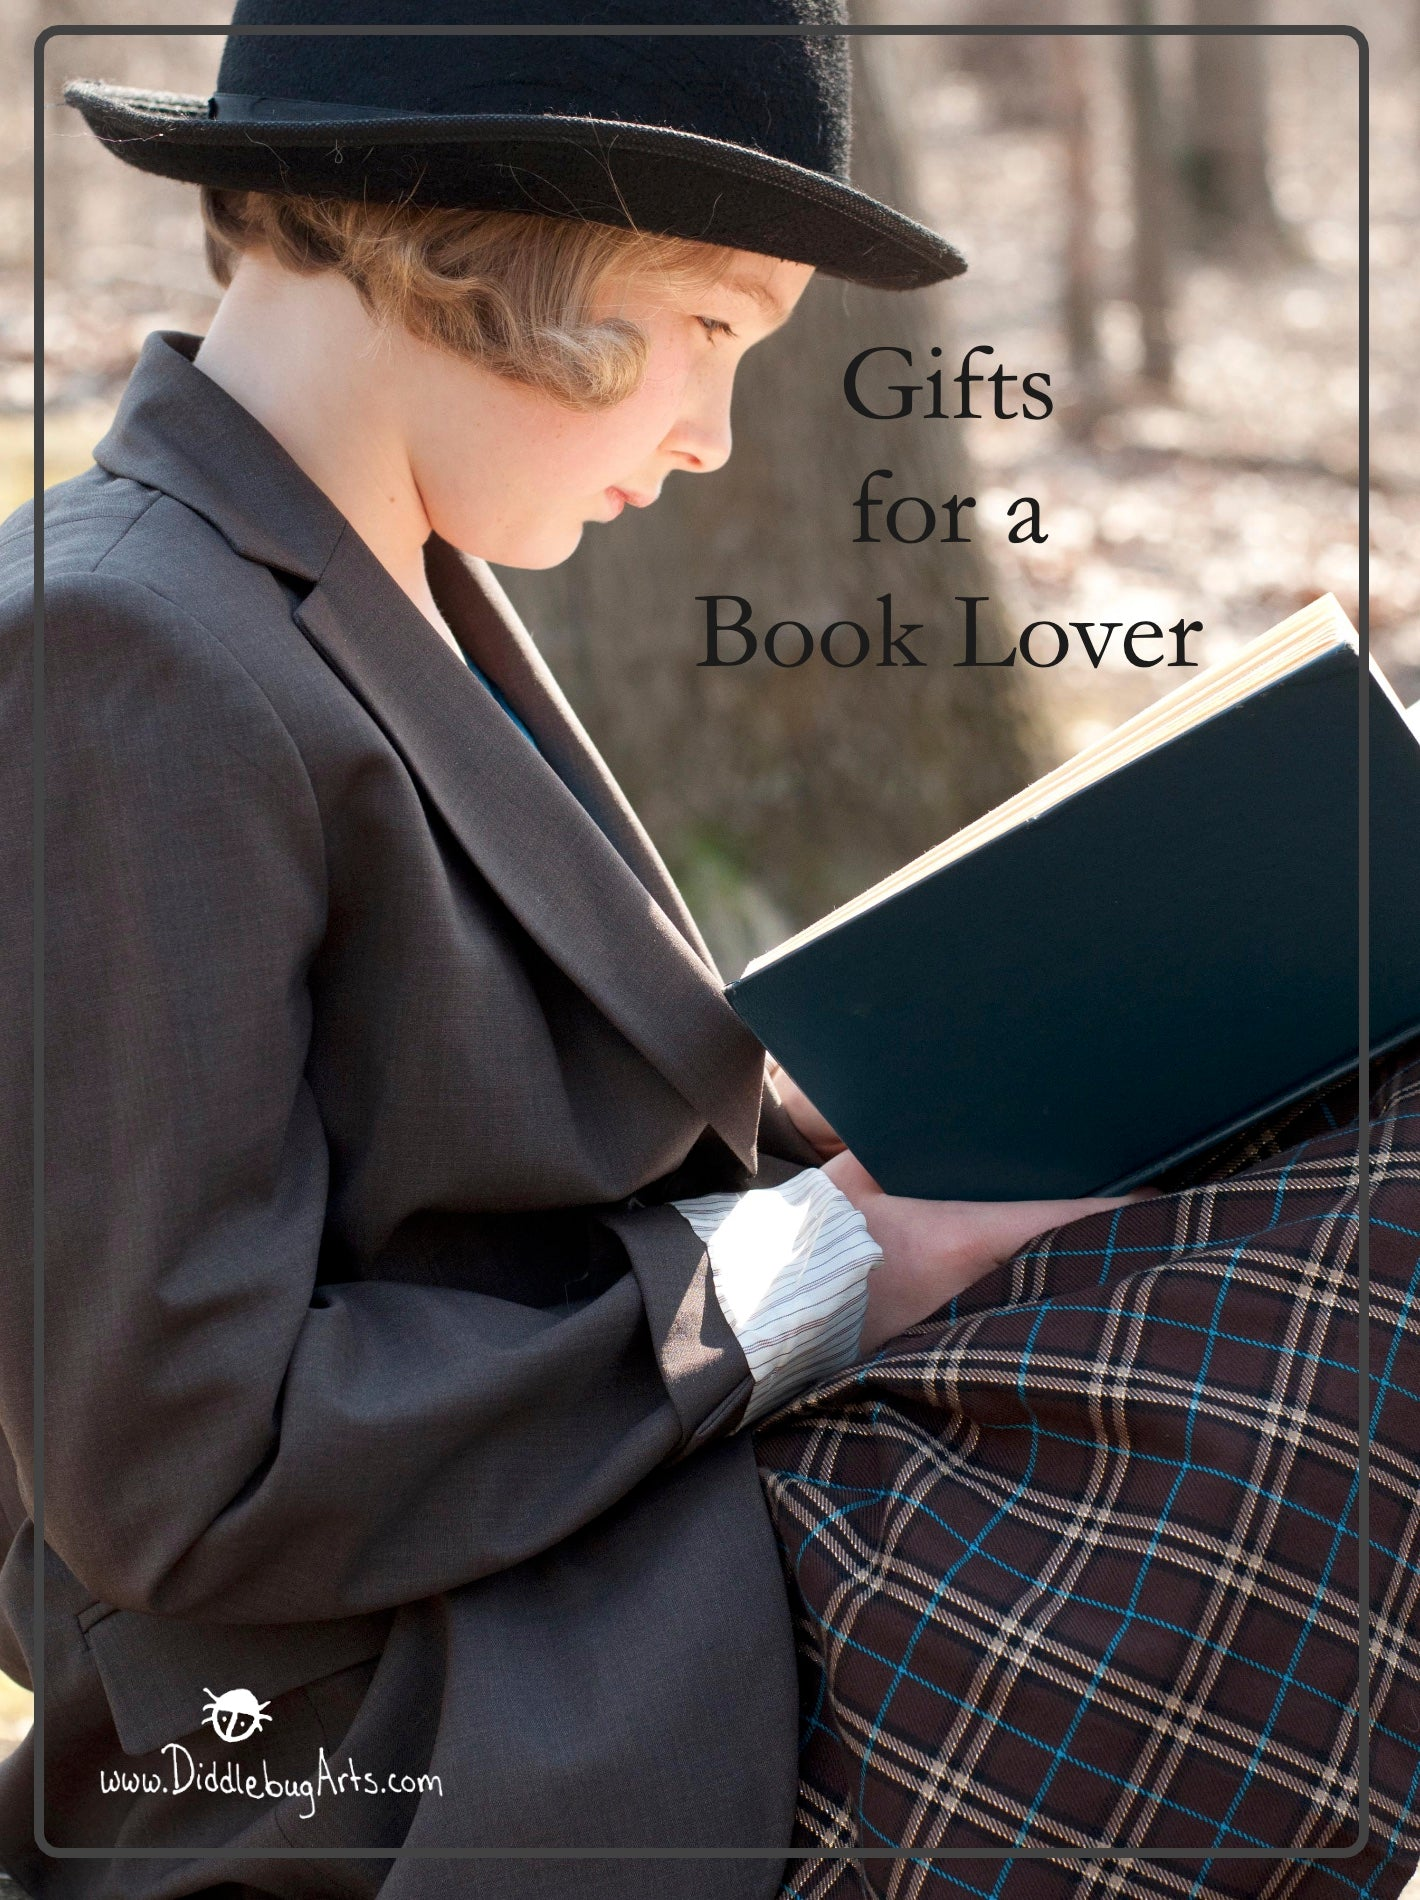 Gifts for a Book Lover Under $50 from Diddlebug